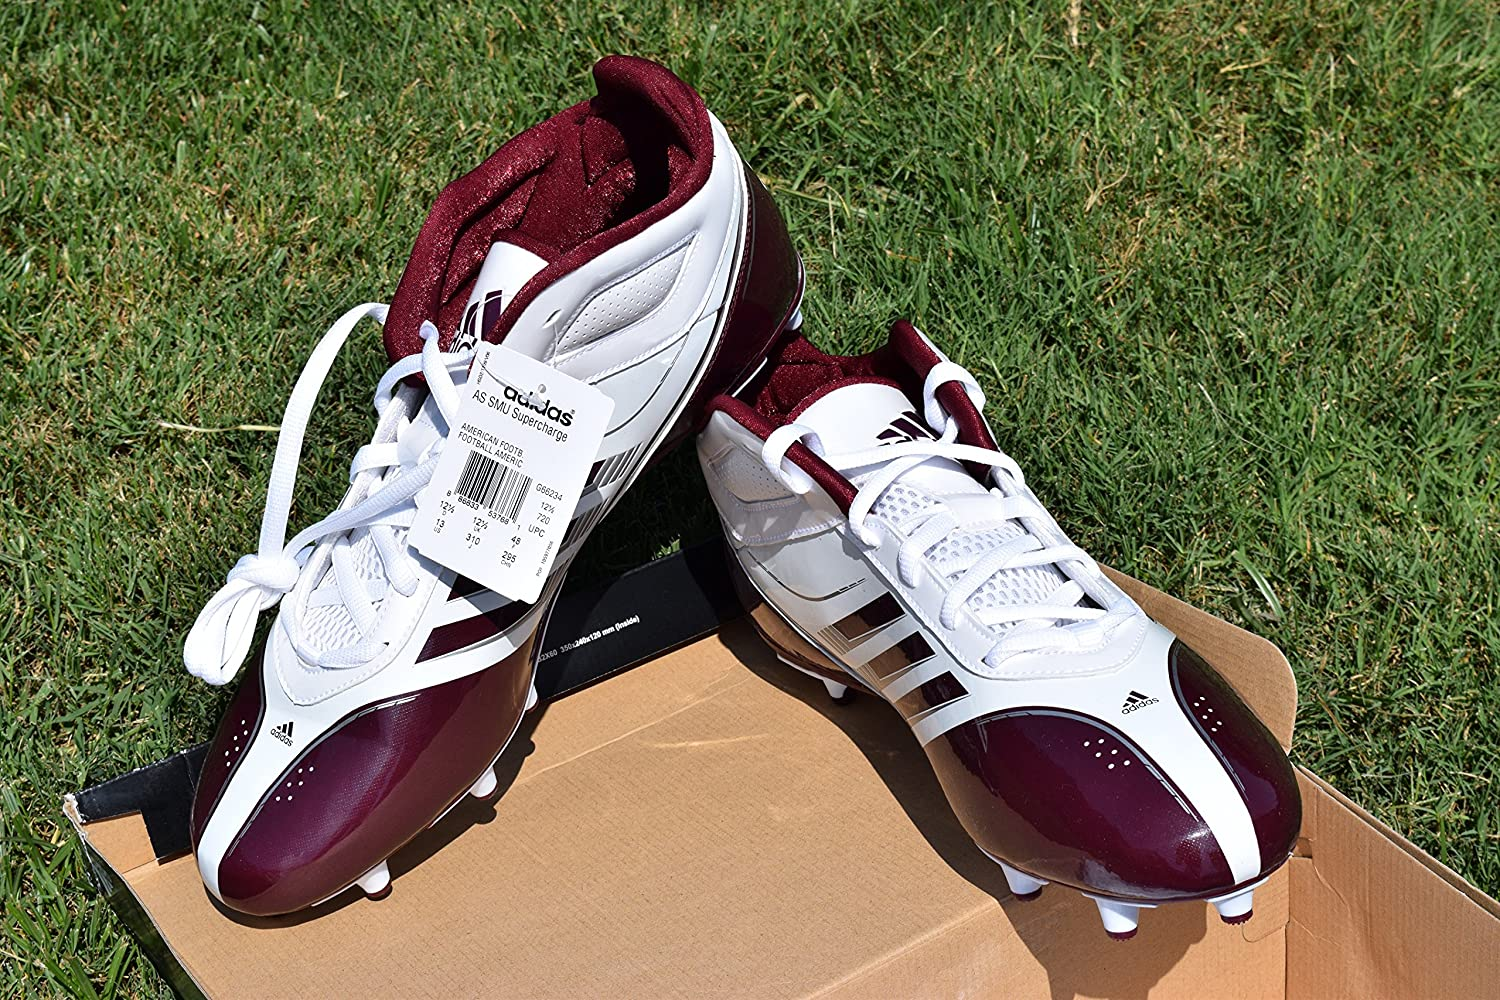 White Football Cleats